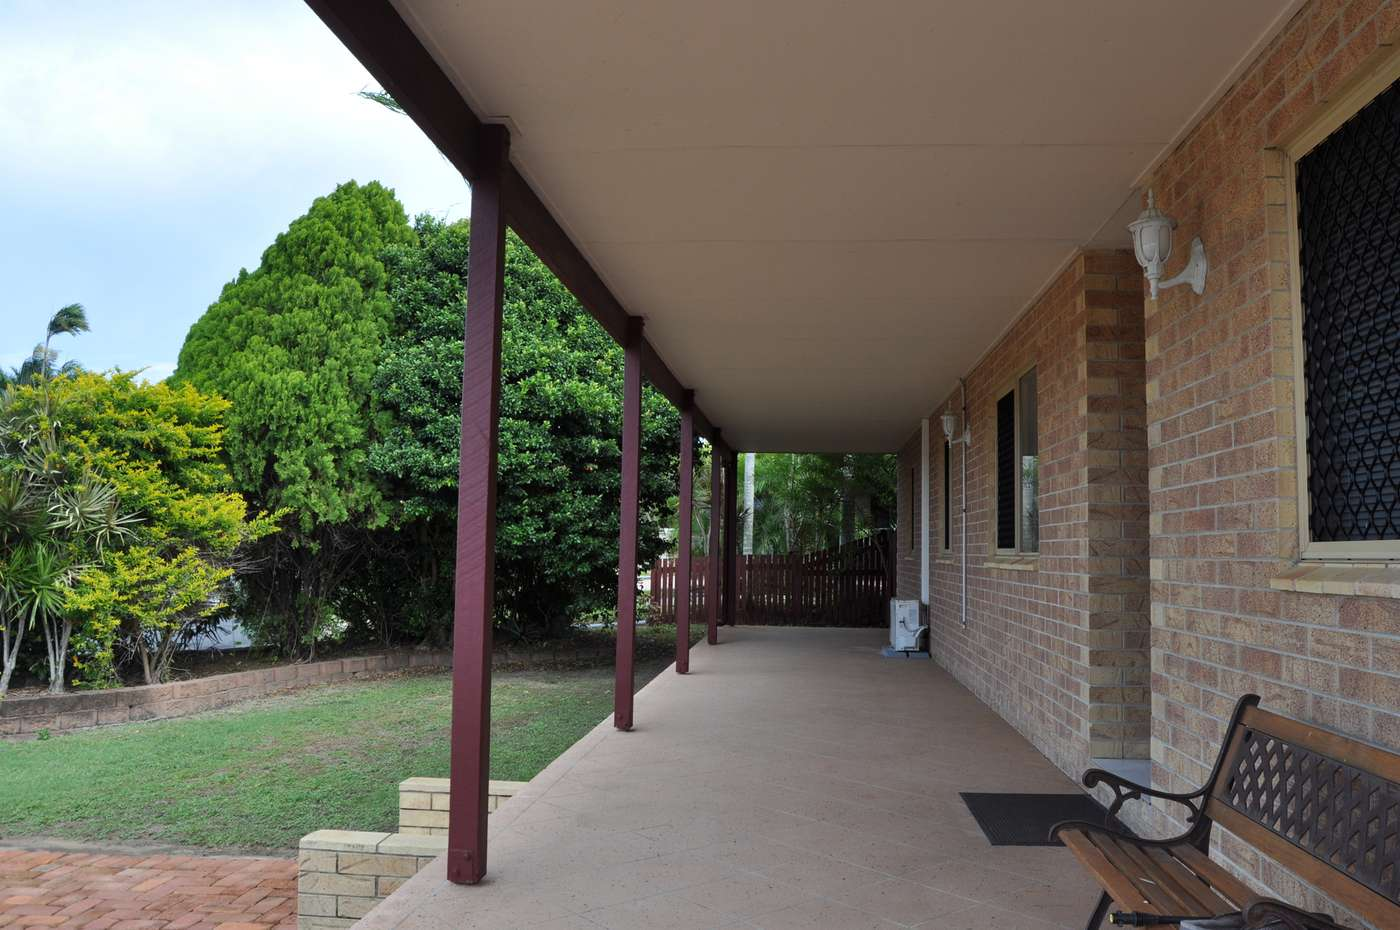 Main view of Homely house listing, 12 Scott Court, Bucasia, QLD 4750